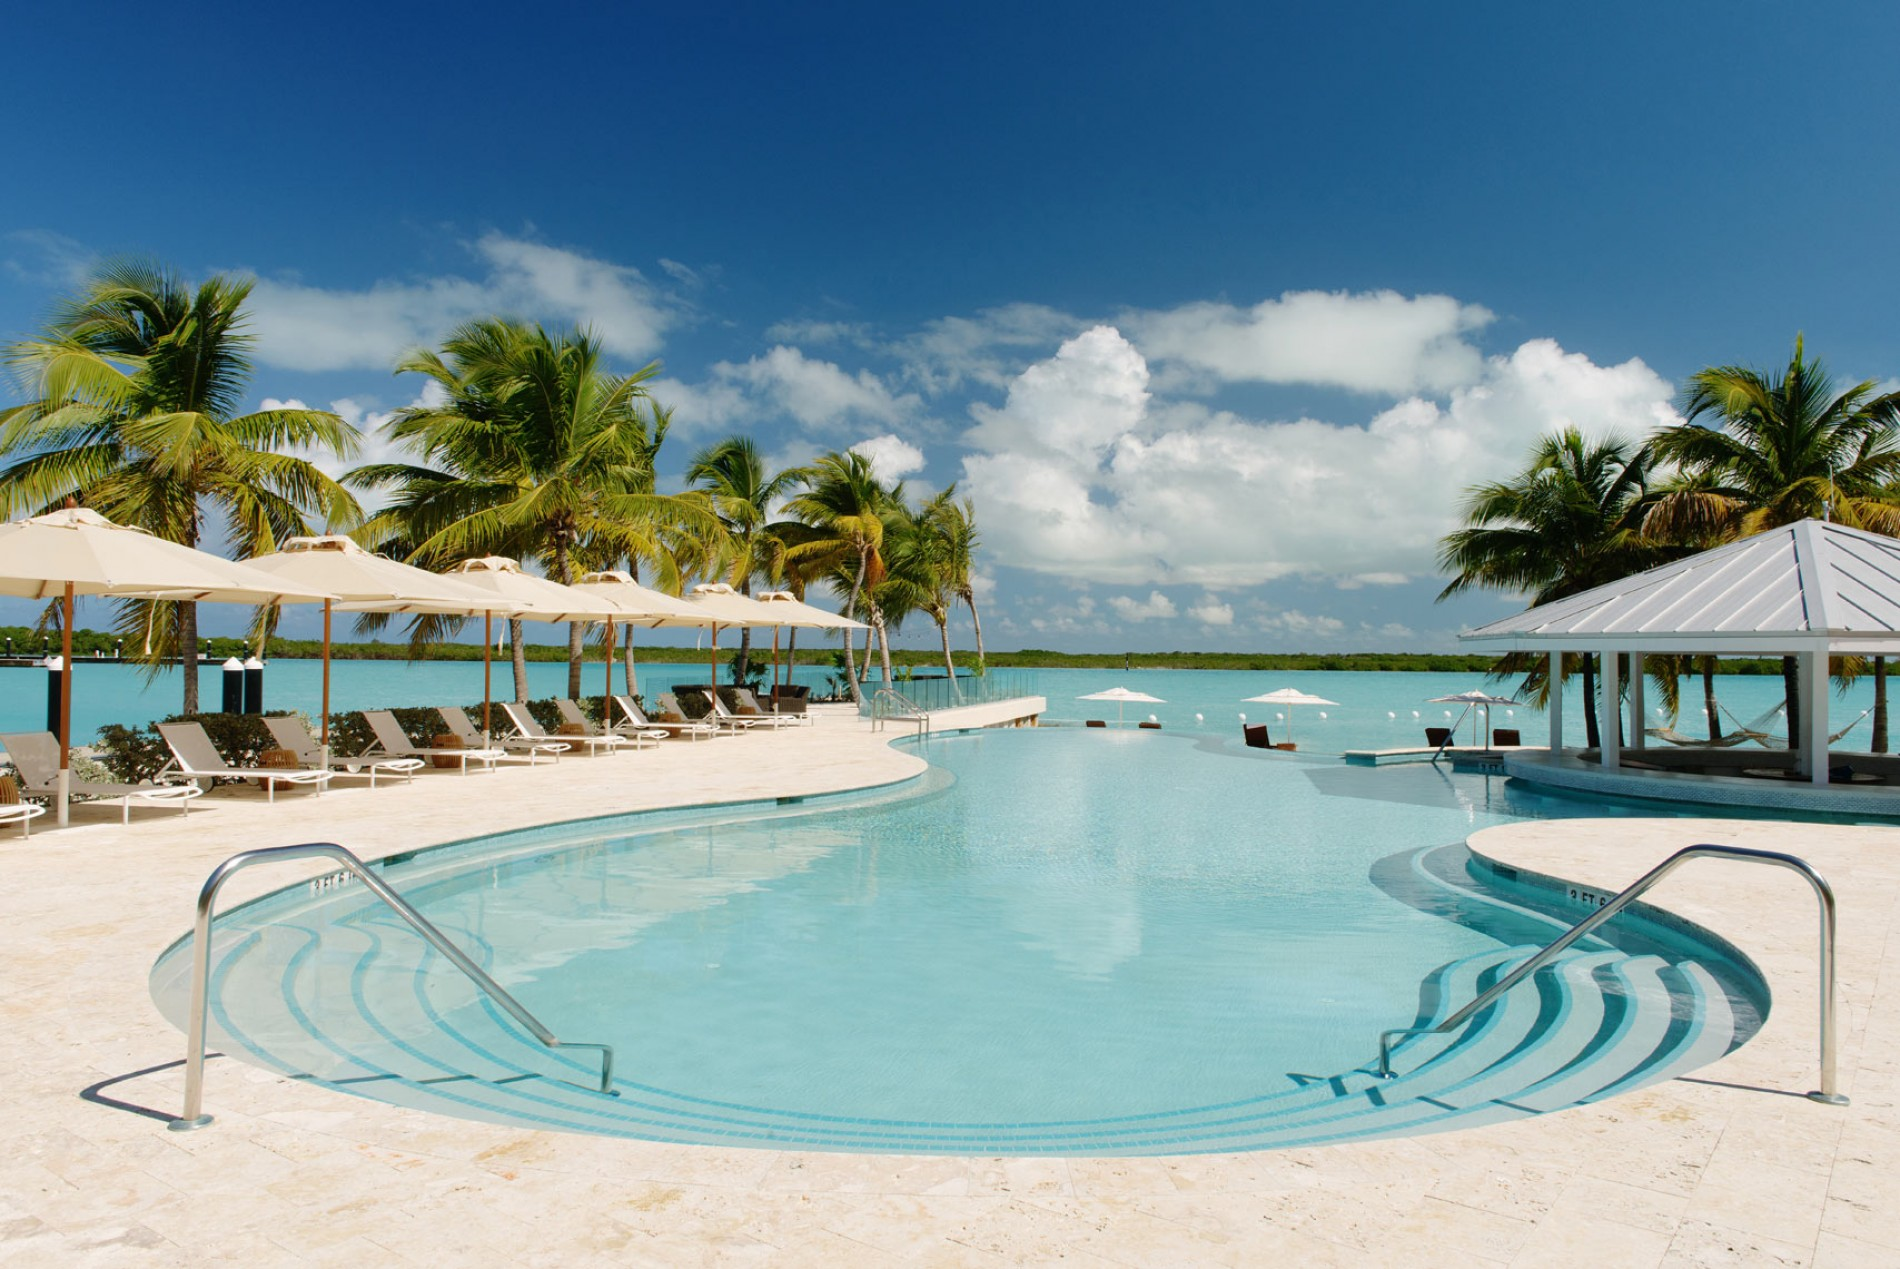 Blue haven resort luxury resort in turks and caicos for Five star turks and caicos